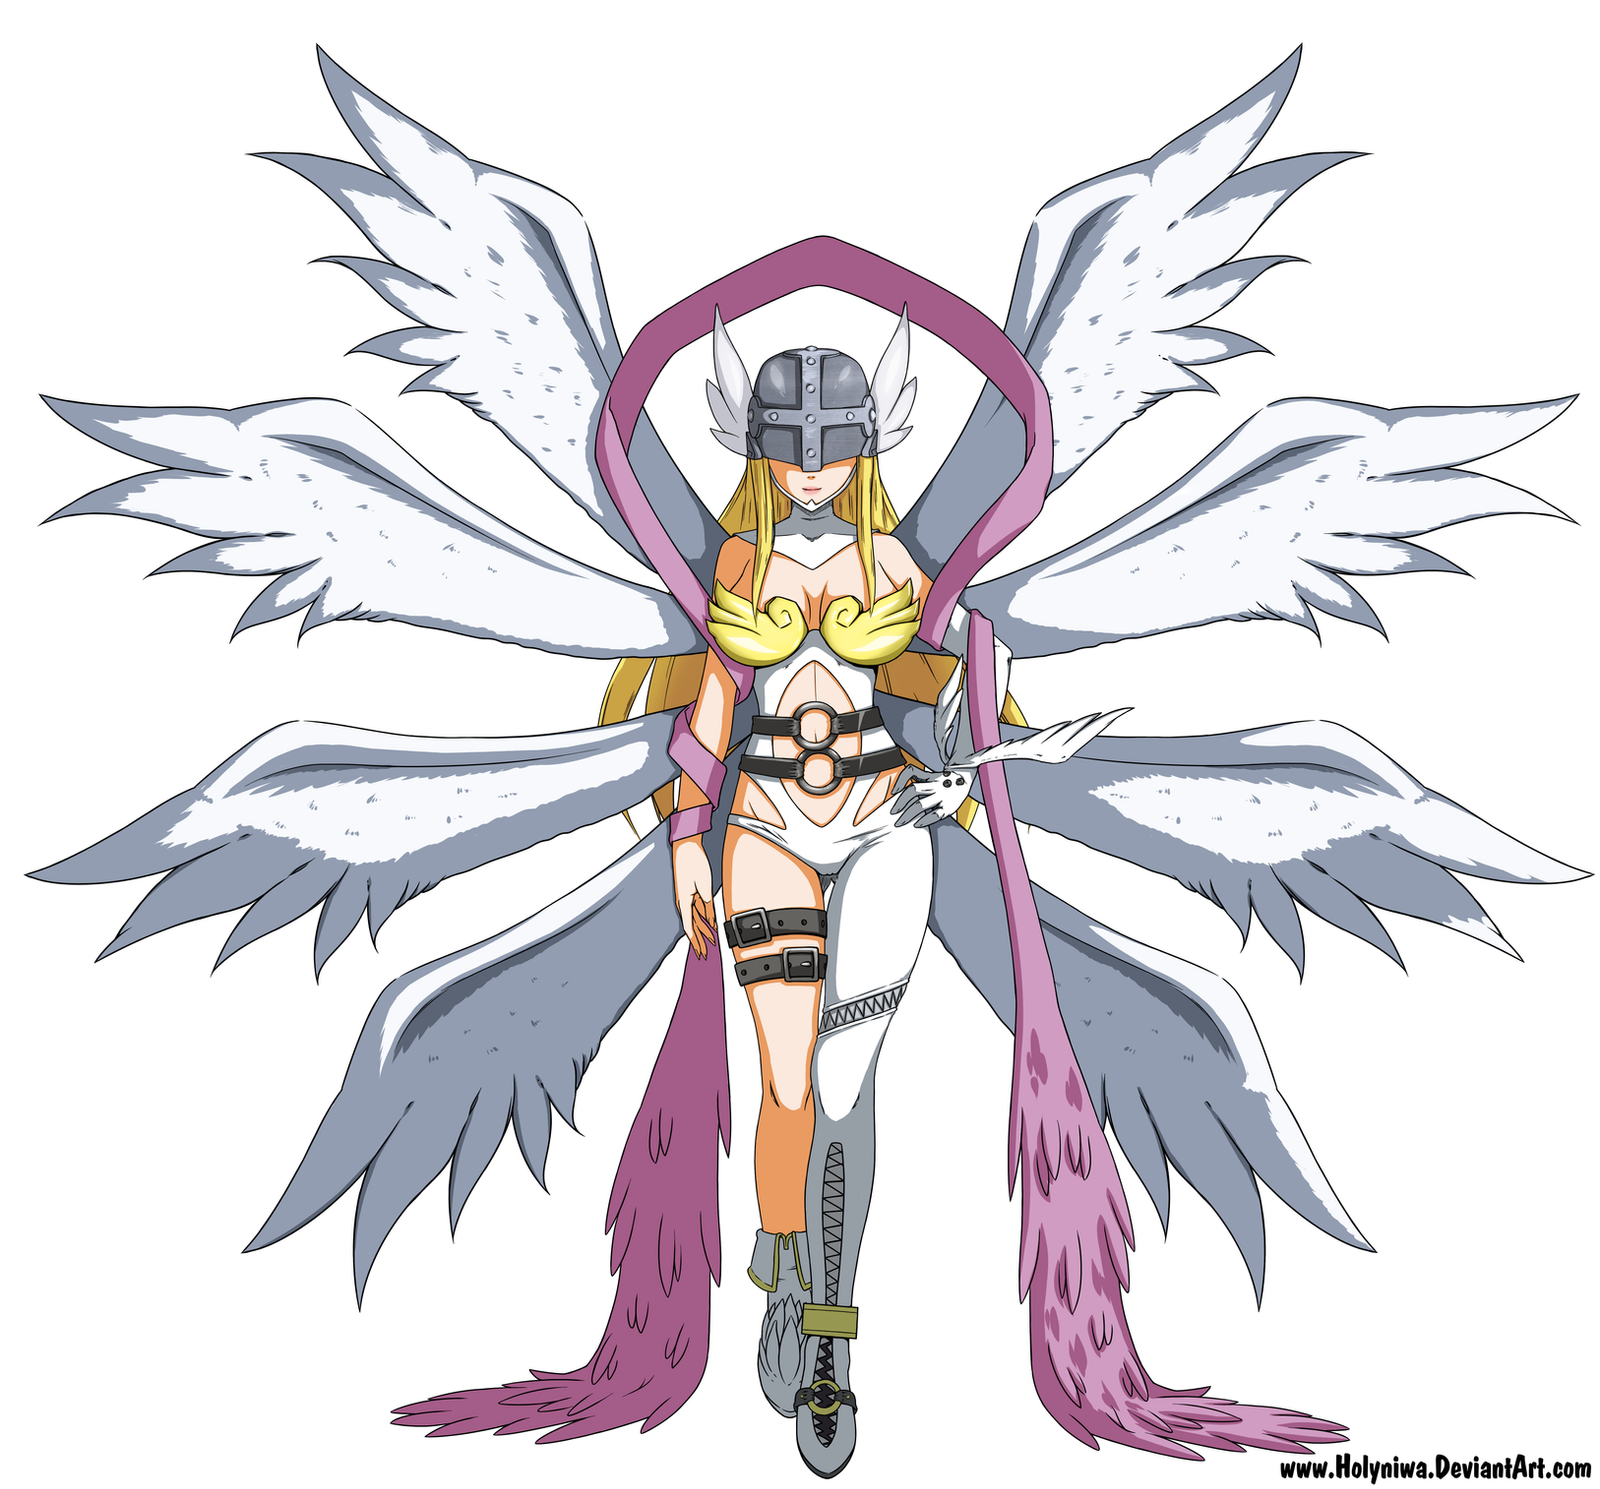 Angewomon Reference by HolyNiwa on DeviantArt: http://holyniwa.deviantart.com/art/angewomon-reference-516837199